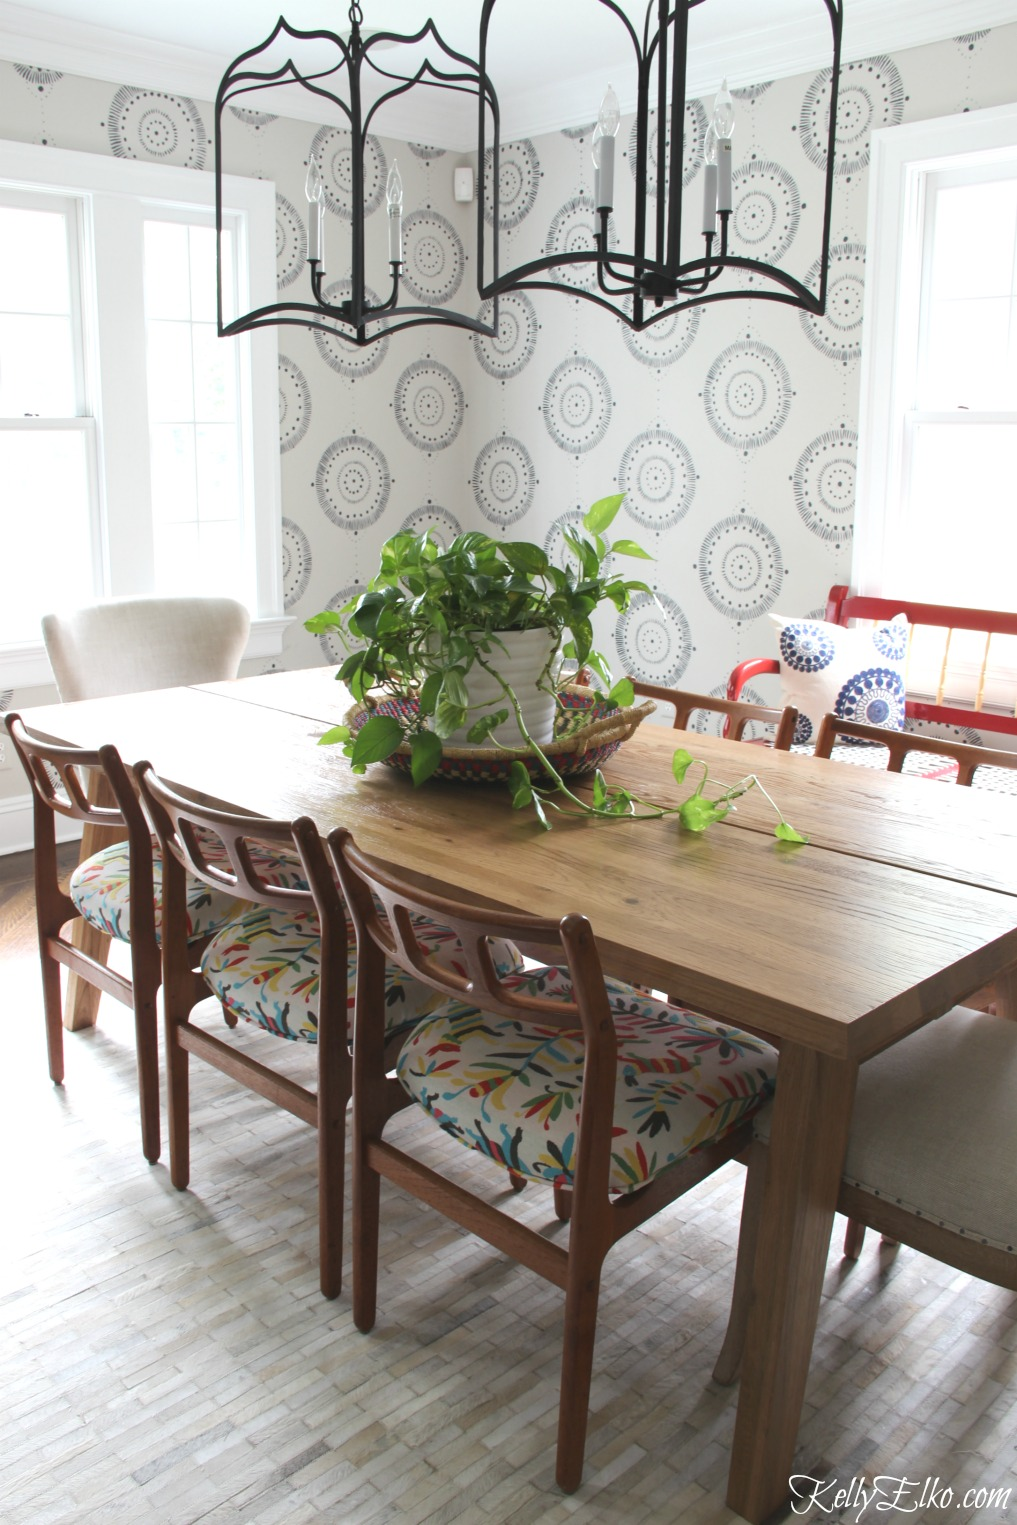 DIY Wall Mural that looks like Serena & Lily wallpaper at a fraction of the cost kellyelko.com #wallmural #murals #diydecor #diyideas #paintingtips #diningroom #diningroomdecor #diningroompaint #diningroomfurniture #vintagedecor #modernvintage #lighting